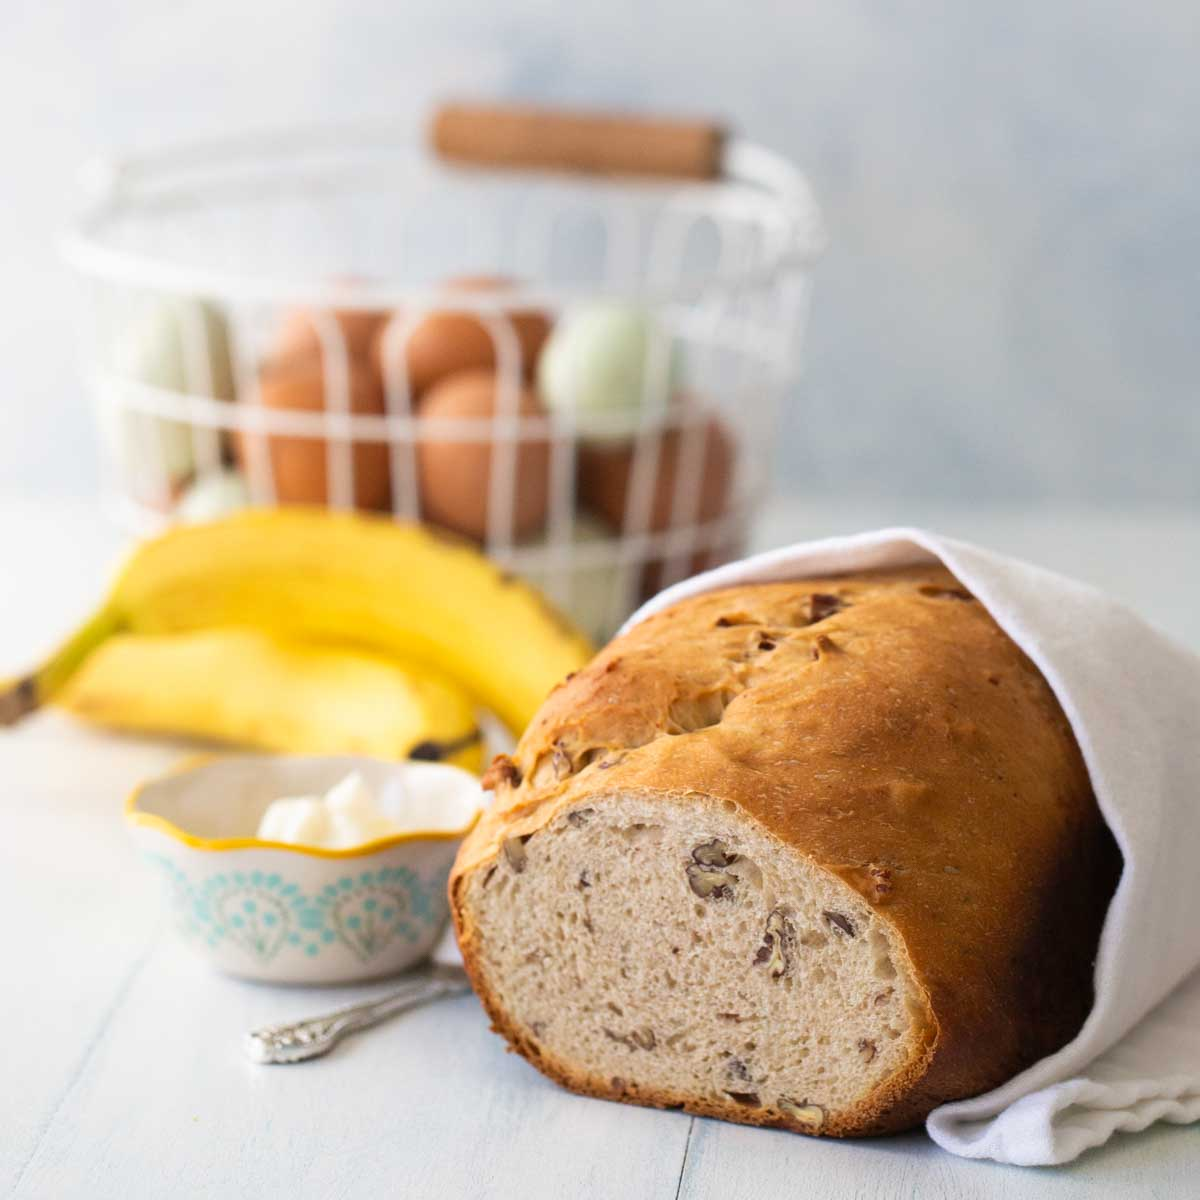 Banana bread wrapped in a tea towel sits next to fresh bananas and a bowl of cream cheese. A basket of eggs in the back.